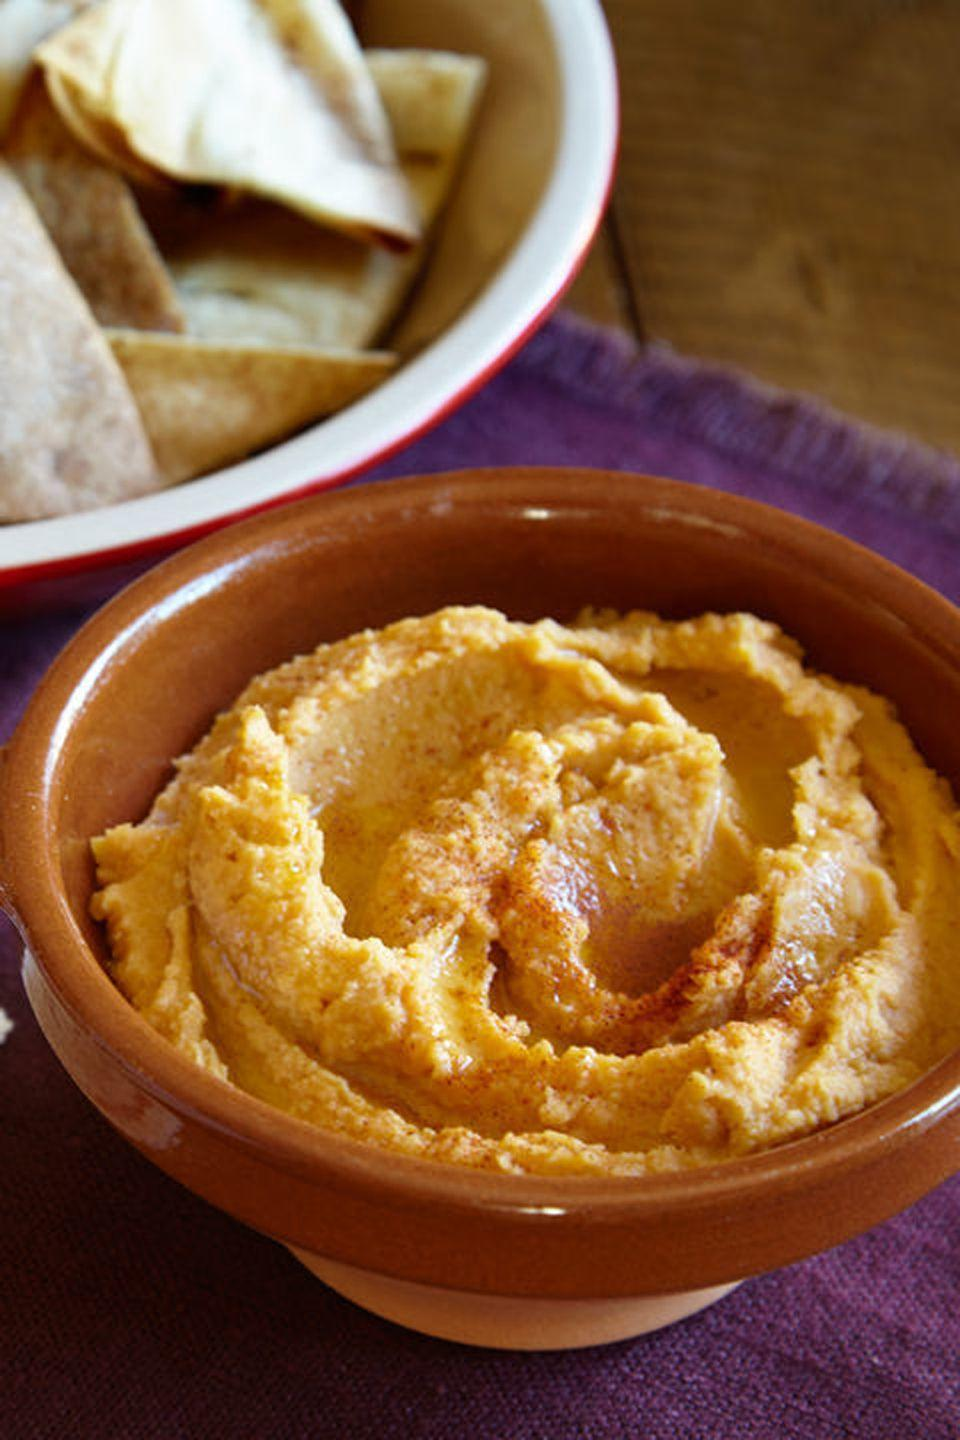 """<p>Put leftover sweet potatoes to use in a flavorful hummus.</p><p><strong>Get the recipe at <a href=""""http://www.delish.com/holiday-recipes/thanksgiving/recipes/a44323/leftover-sweet-potato-hummus-recipe/"""" rel=""""nofollow noopener"""" target=""""_blank"""" data-ylk=""""slk:Delish"""" class=""""link rapid-noclick-resp"""">Delish</a>.</strong></p>"""